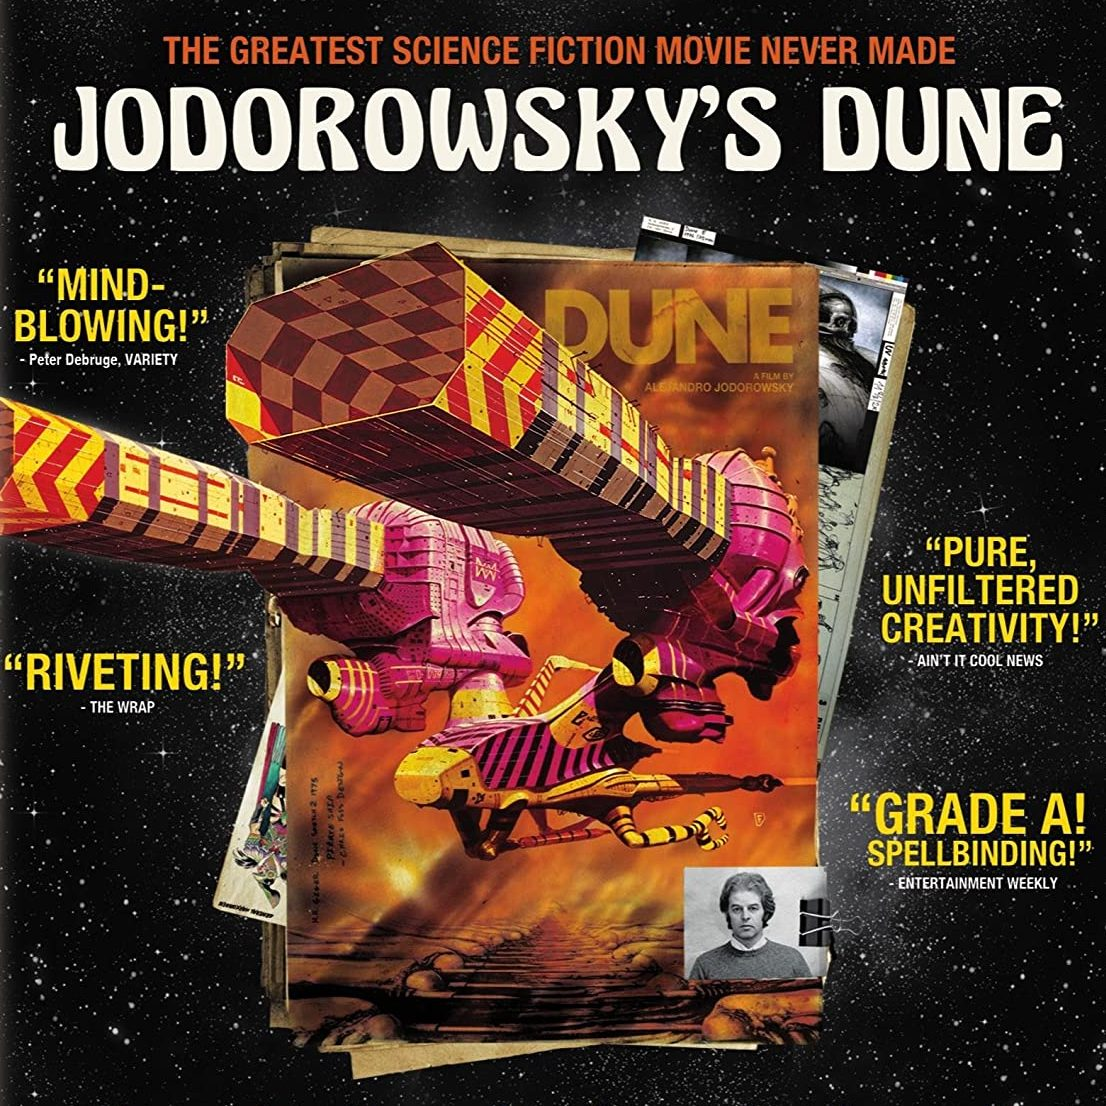 91KRqAzzB0L. AC SL1500 e1603120326661 20 Things You Probably Didn't Know About The 1984 Sci-Fi Film Dune